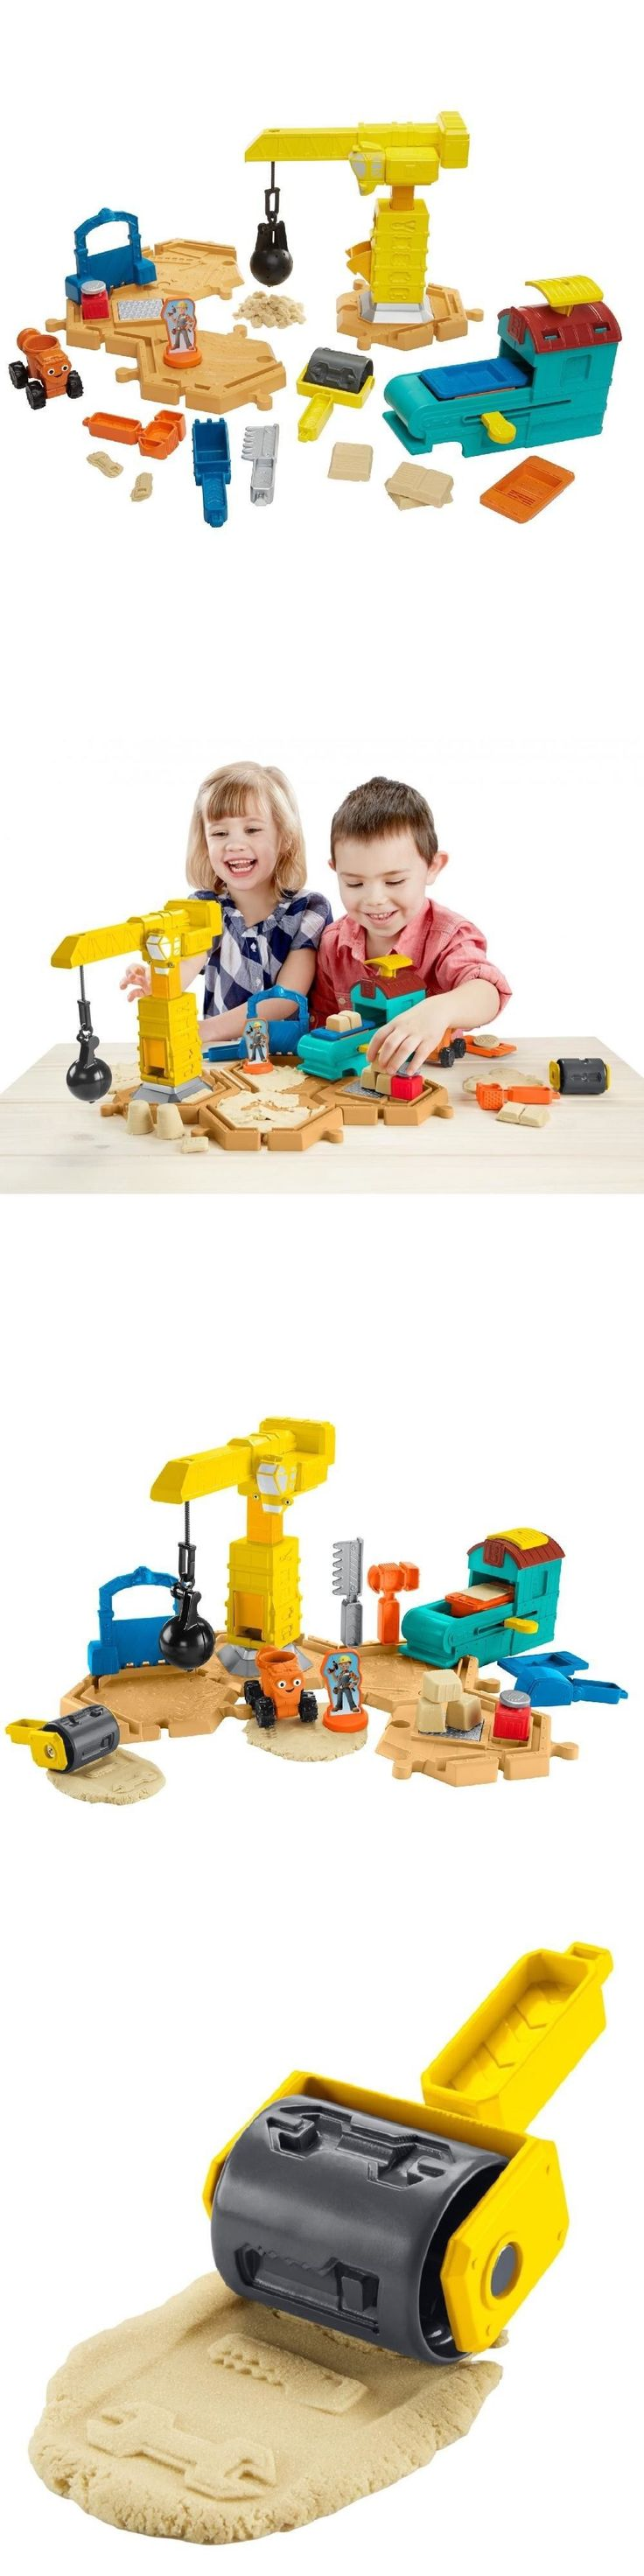 Bob the builder live online dvd rental - Bob The Builder 20902 Mash Mold Construction Site 5 Different Tools Easy Use Move Bob